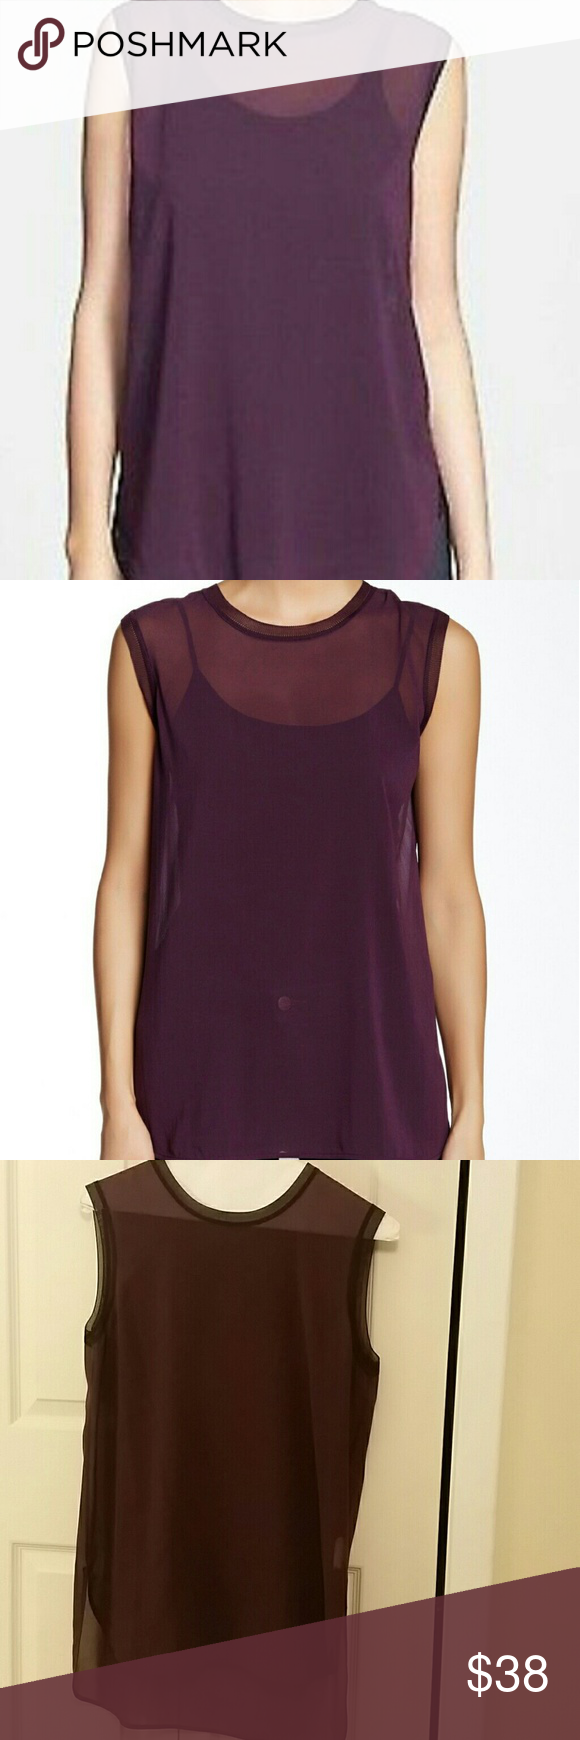 9ff08b53b8c7ff VINCE Plum Purple Sheer Silk Sleeveless Top M Gorgeous top by Vince. The  color is